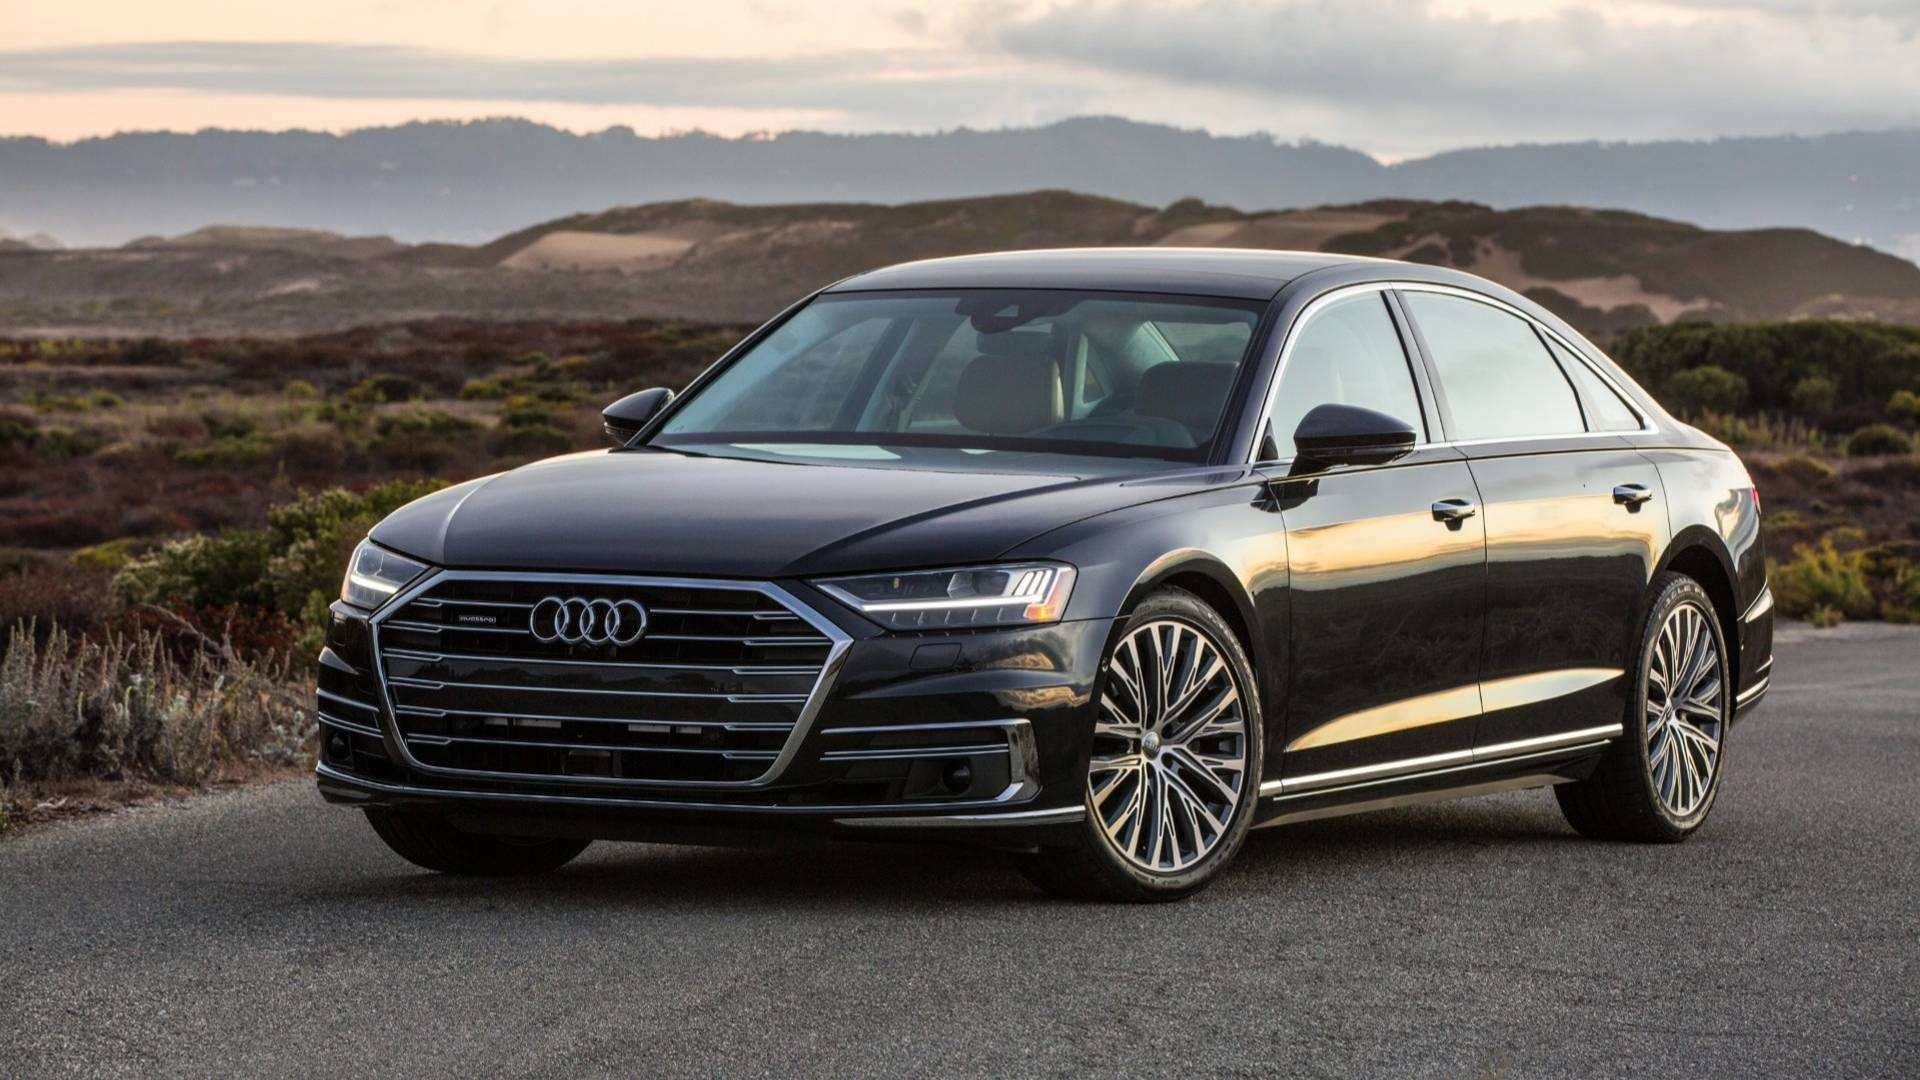 13 Gallery of 2019 Audi A8 Features Style by 2019 Audi A8 Features